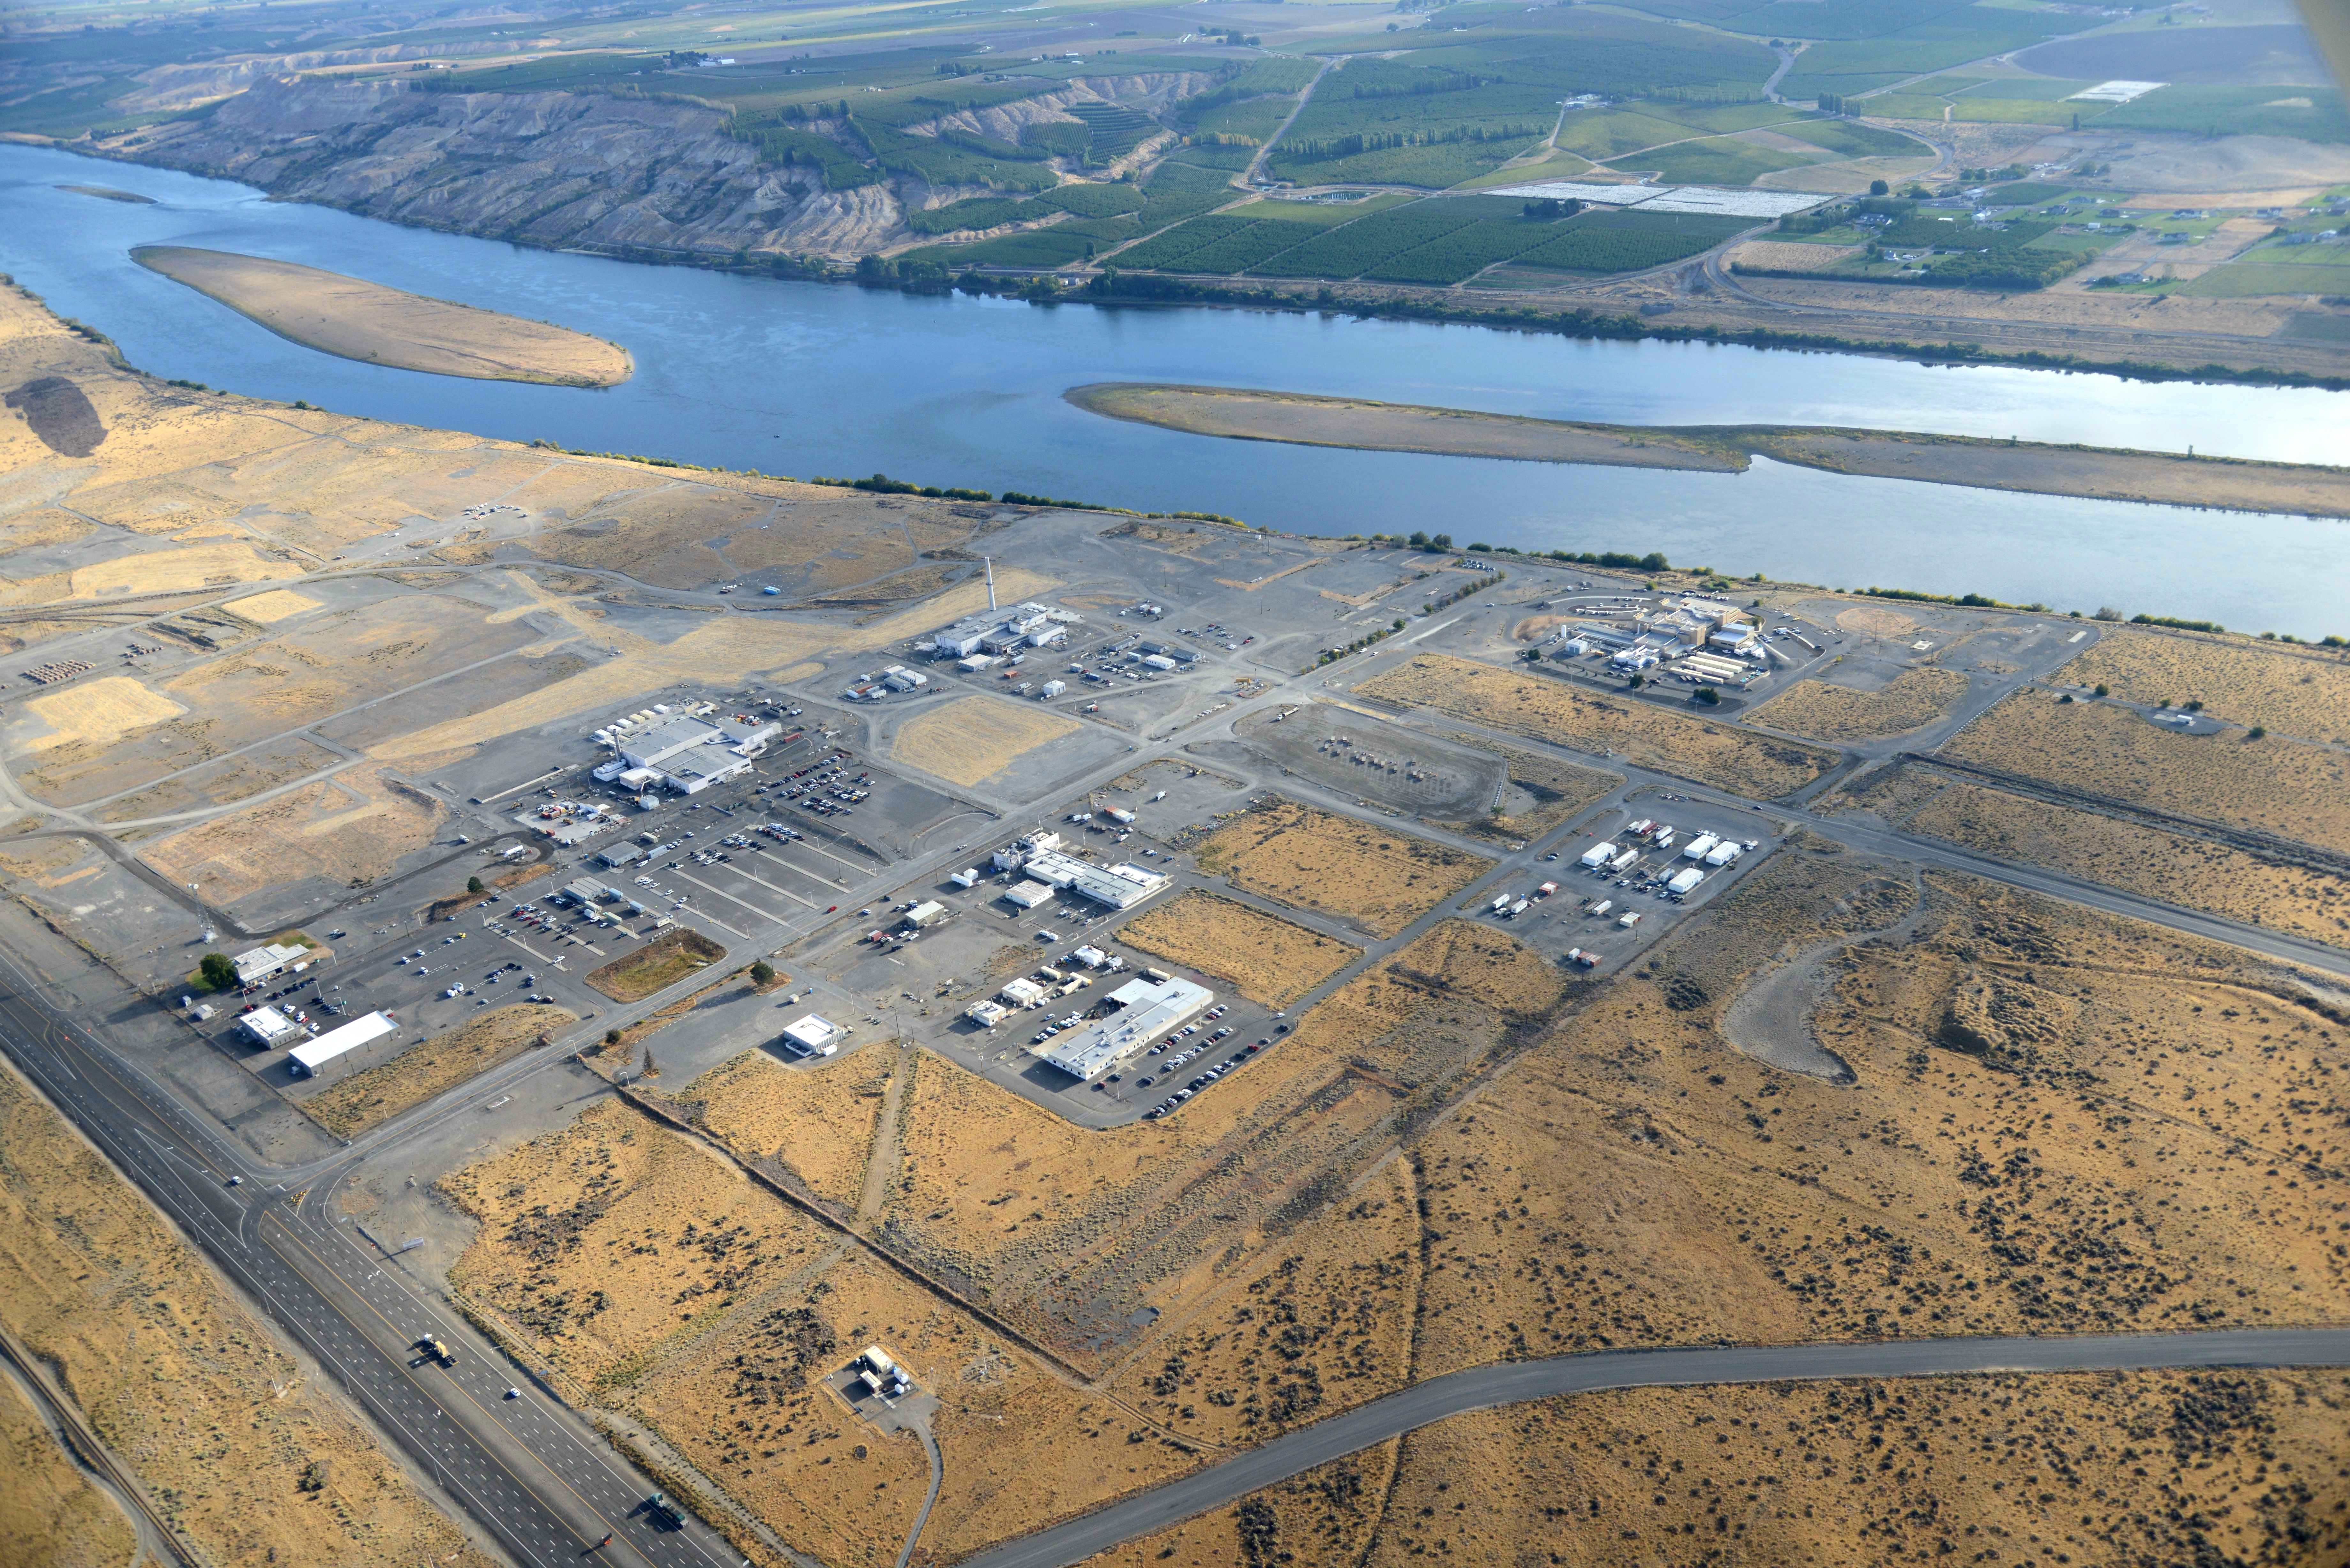 Aerial view of Hanford's 300 Area, showing a variety of buildings spread out over a large swath of land near the Columbia River